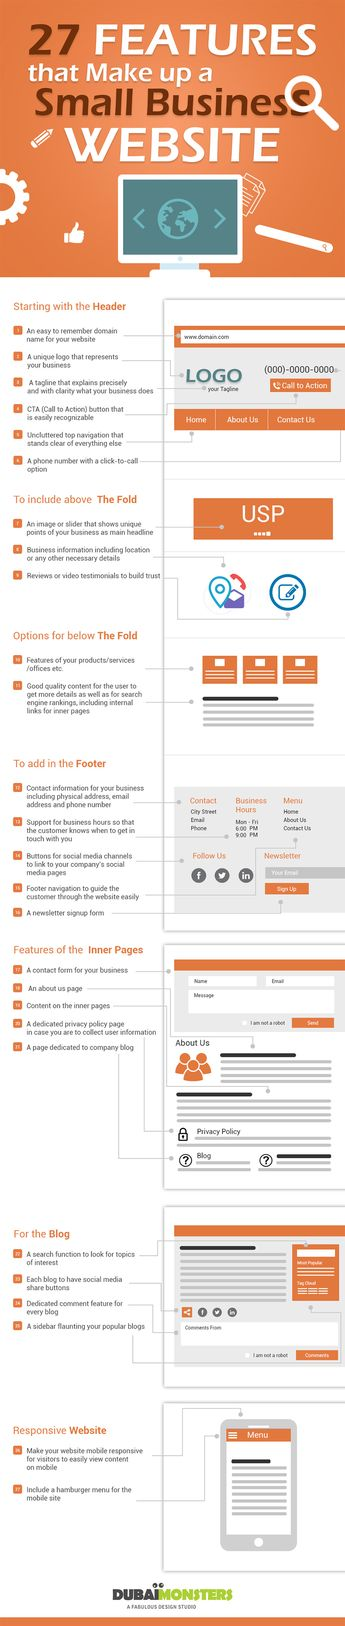 Infographic looks at the essential elements of any small business website